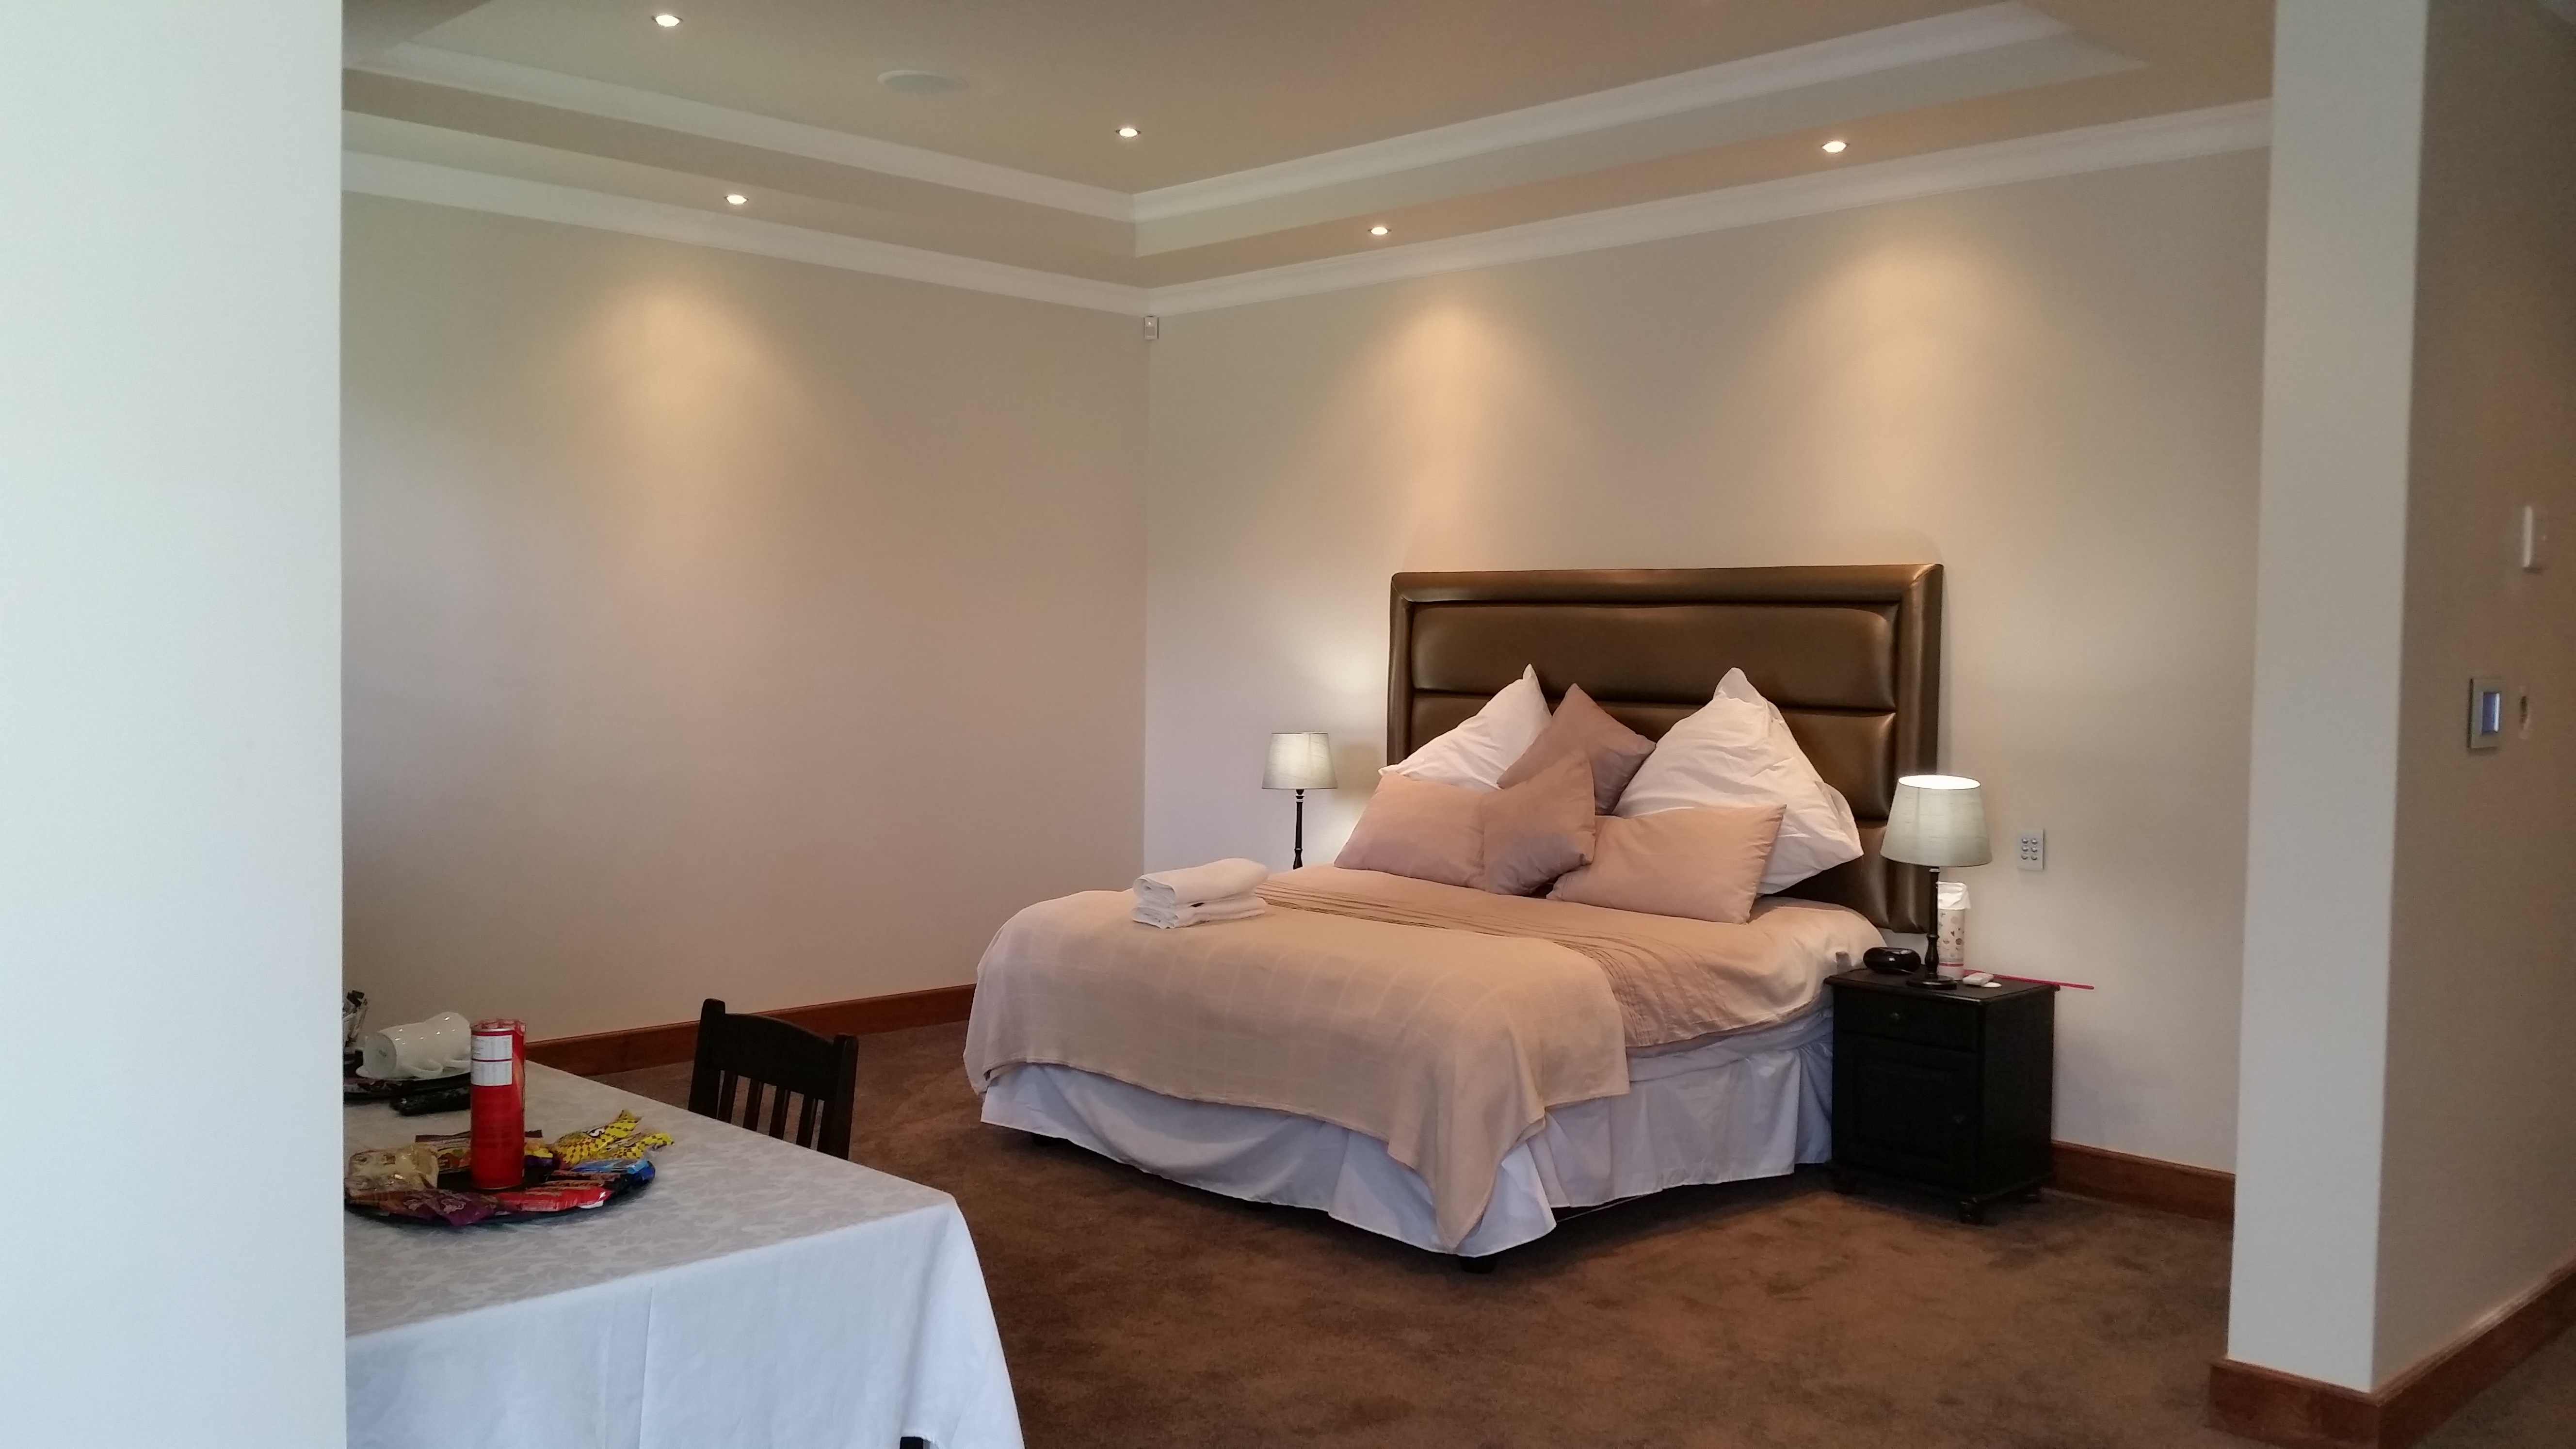 Fully furnished luxurious house for sale in Johannesburg 3